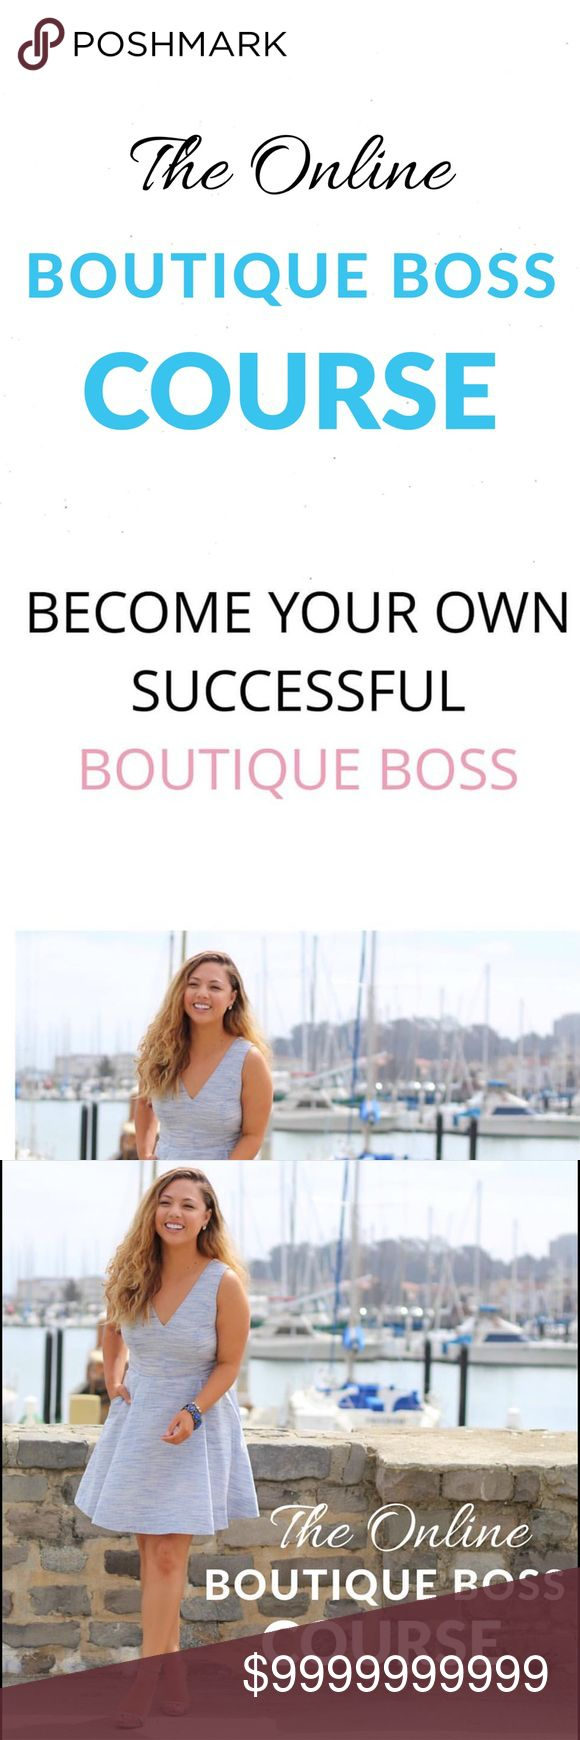 [ENROLLMENT OPEN] Online Boutique Boss Course Doors are now officially open to join the Online Boutique Boss Course!  If you're ready to learn how to start and grow your own successful boutique, come on over and join our community! Only open for a limited time.   Get access to enrollment details here: course.onlineboutiqueboss.com MonikaRoseSF Other